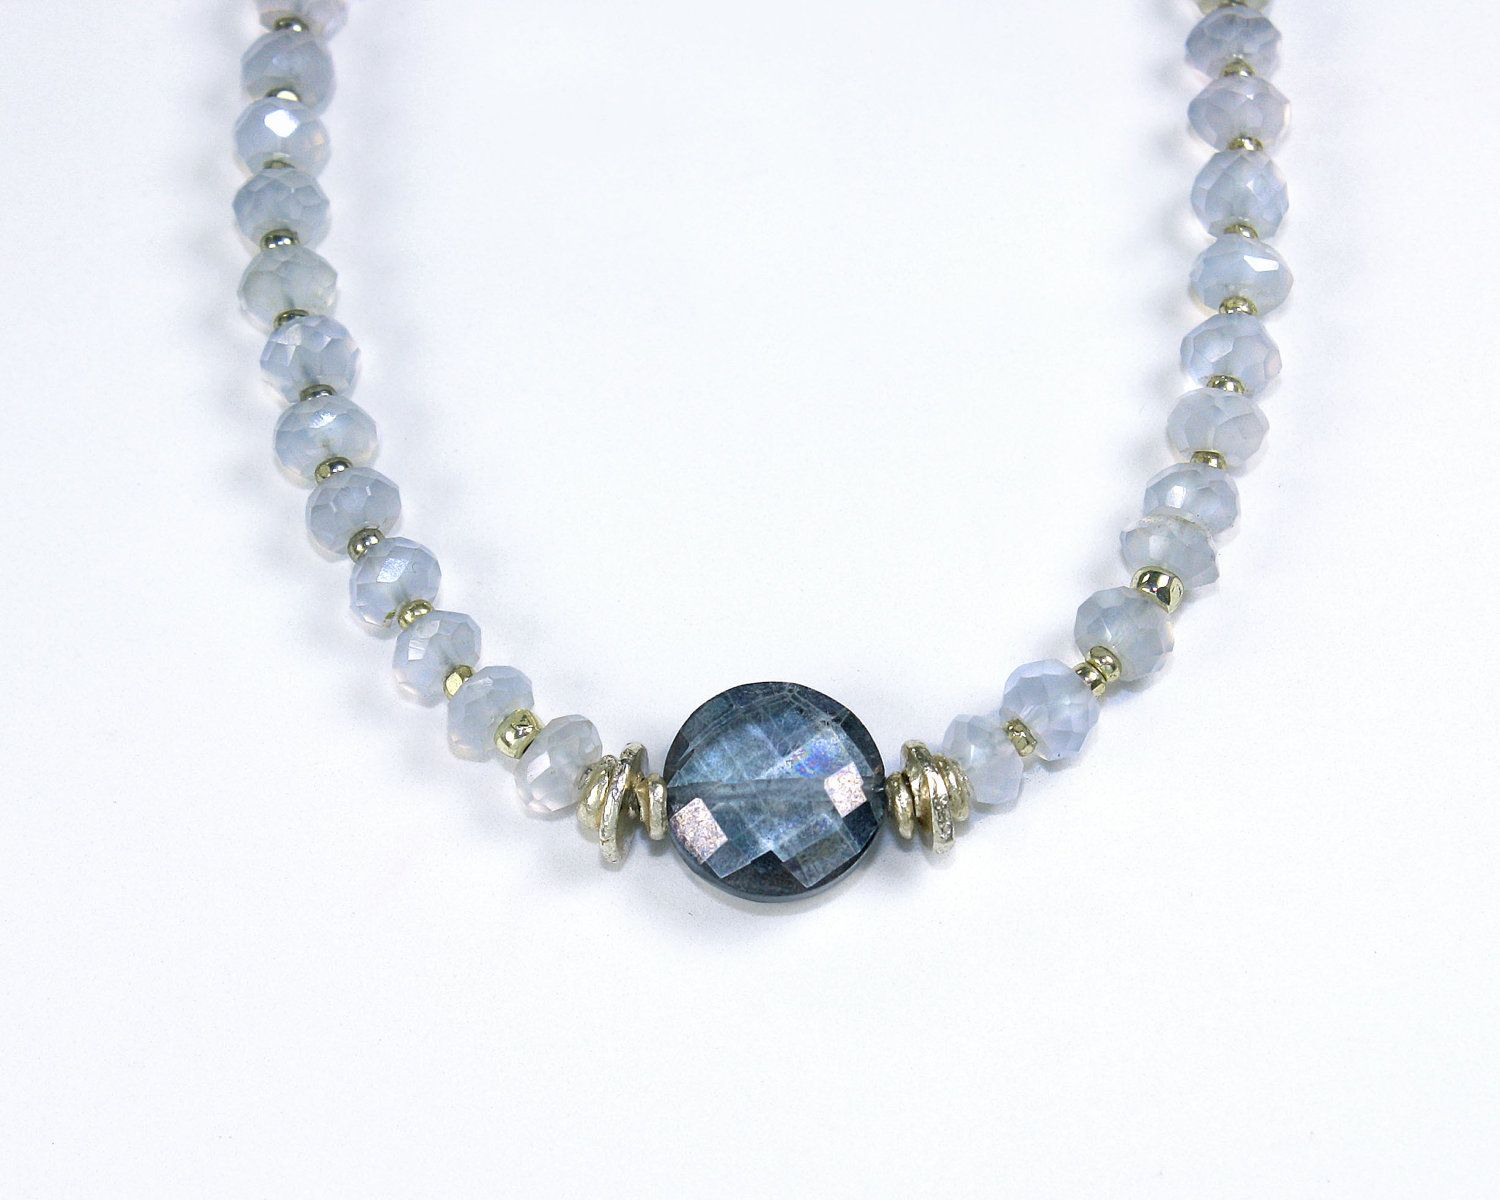 SALE Jubjub. Blue mystic topaz and chalcedony necklace with Sterling silver droplet beads and clasp. Silver blue and mauve. $38.99, via Etsy.